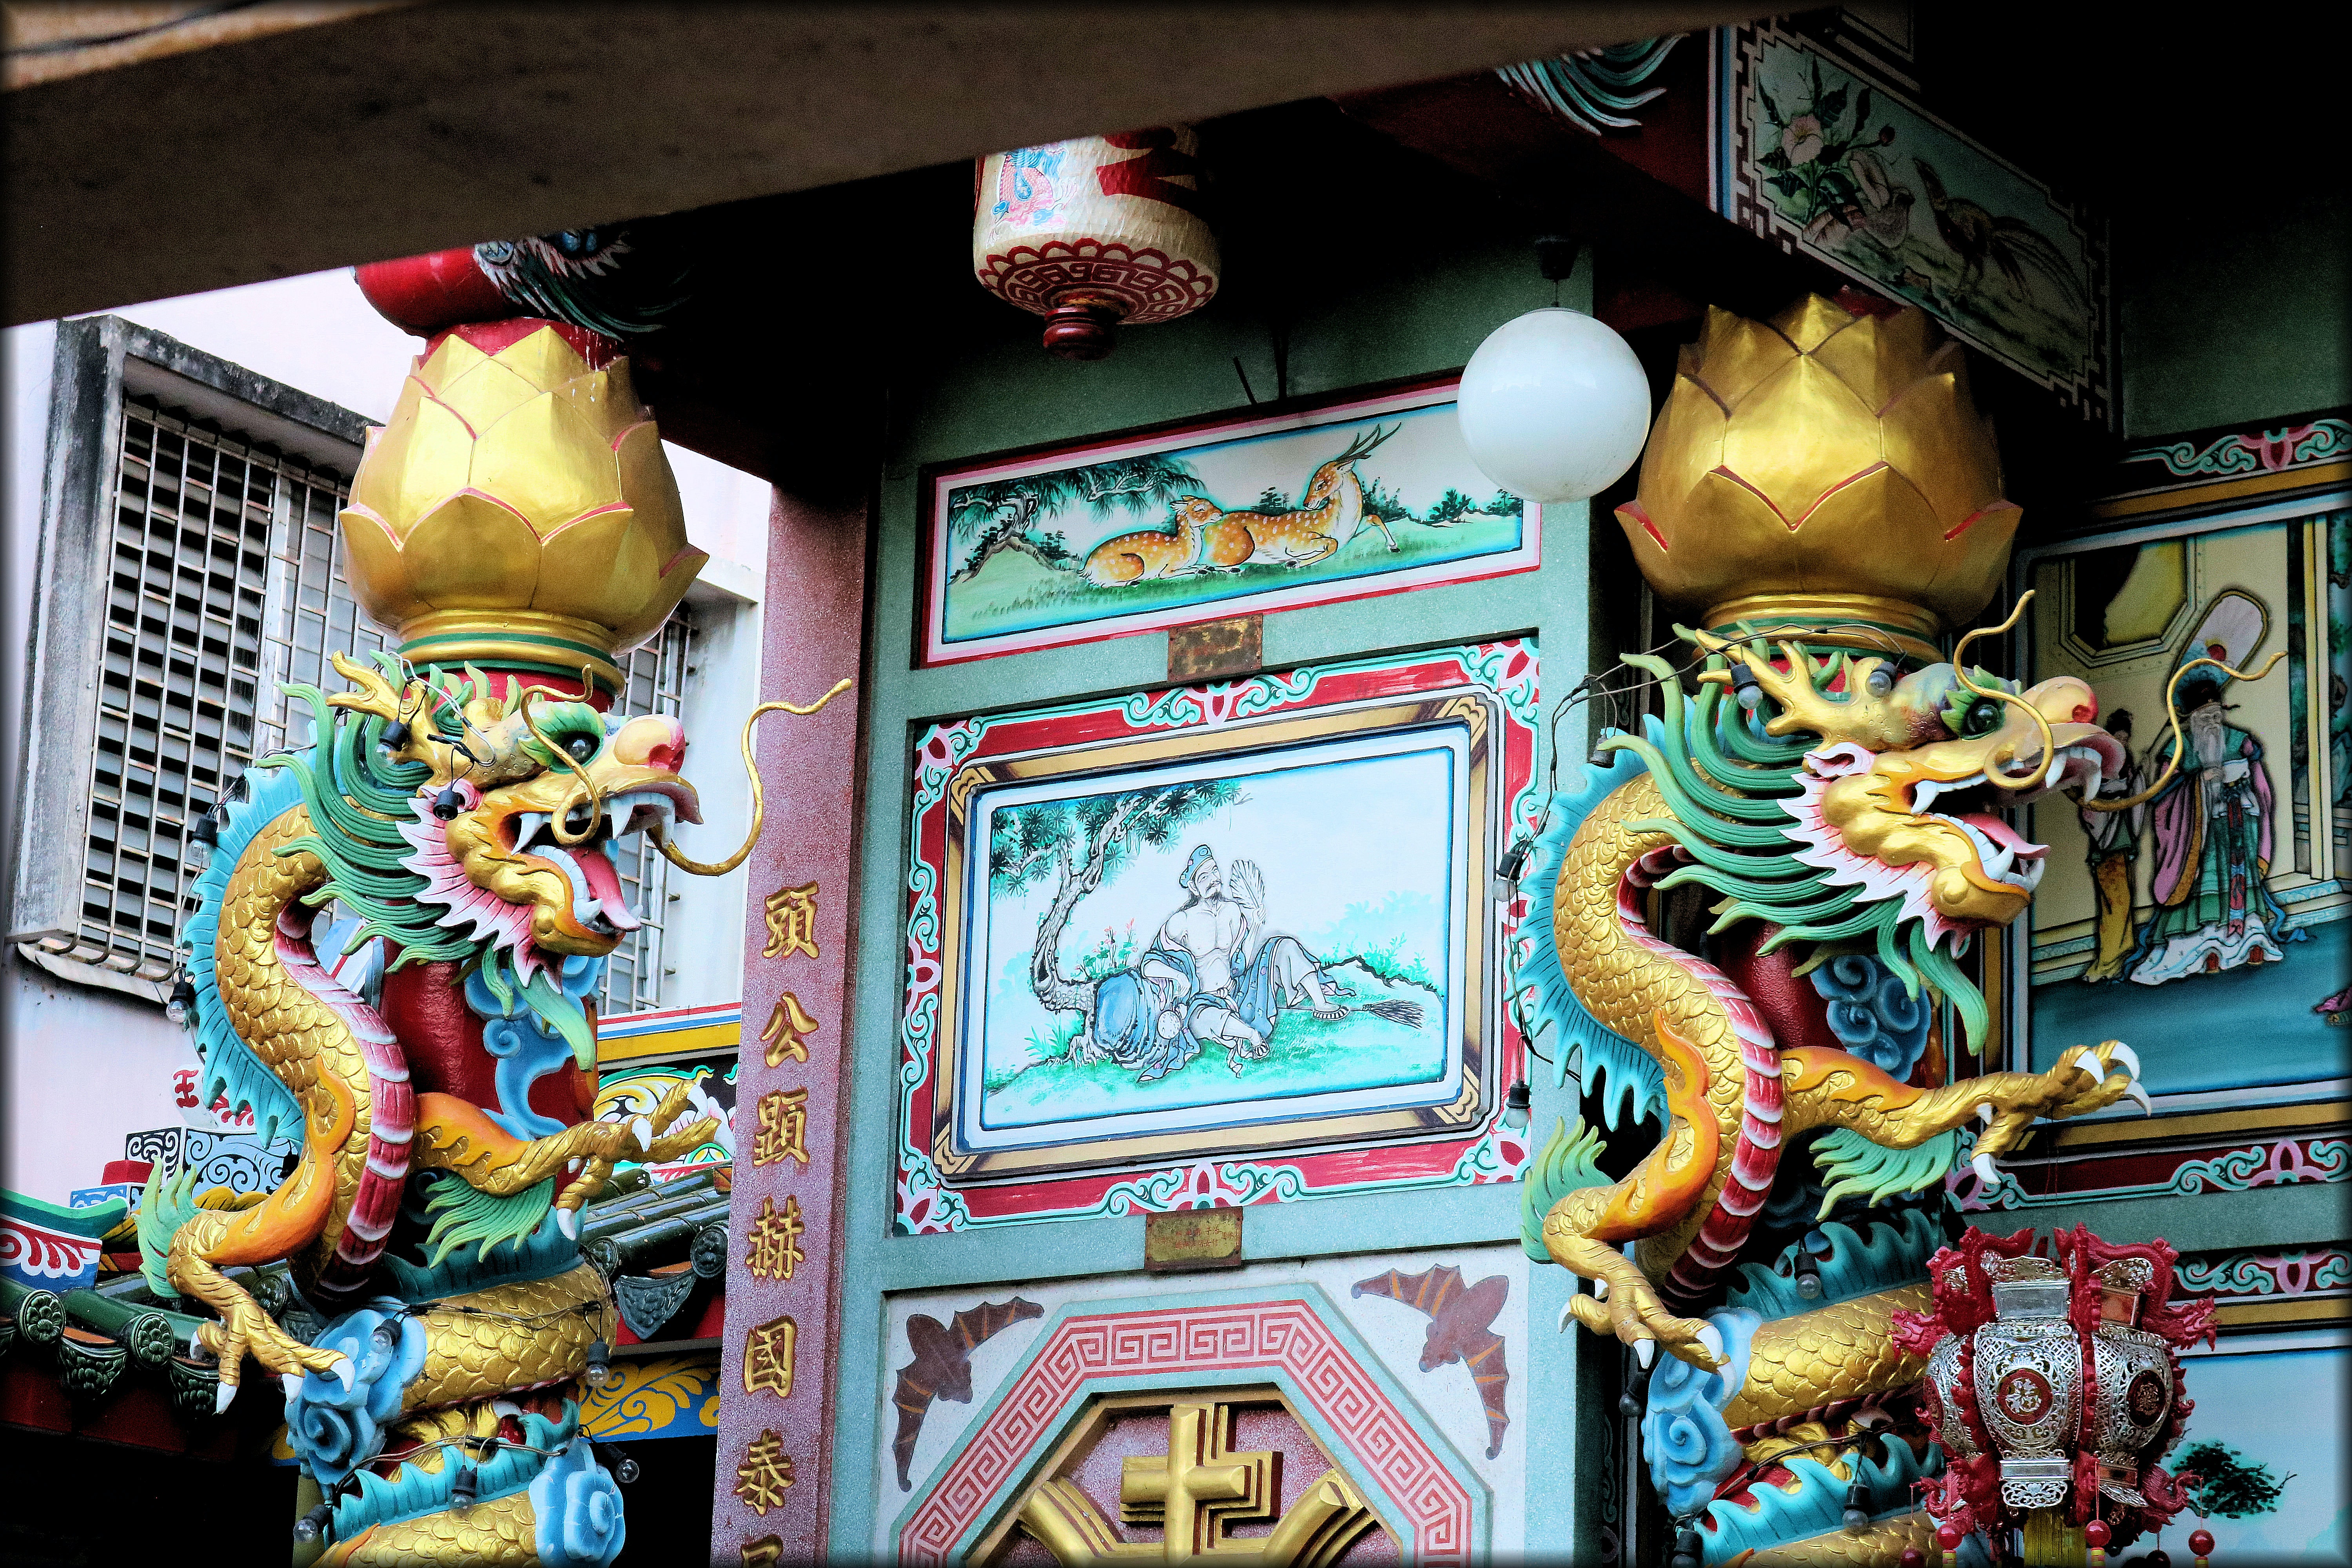 two dragon statues next to temple